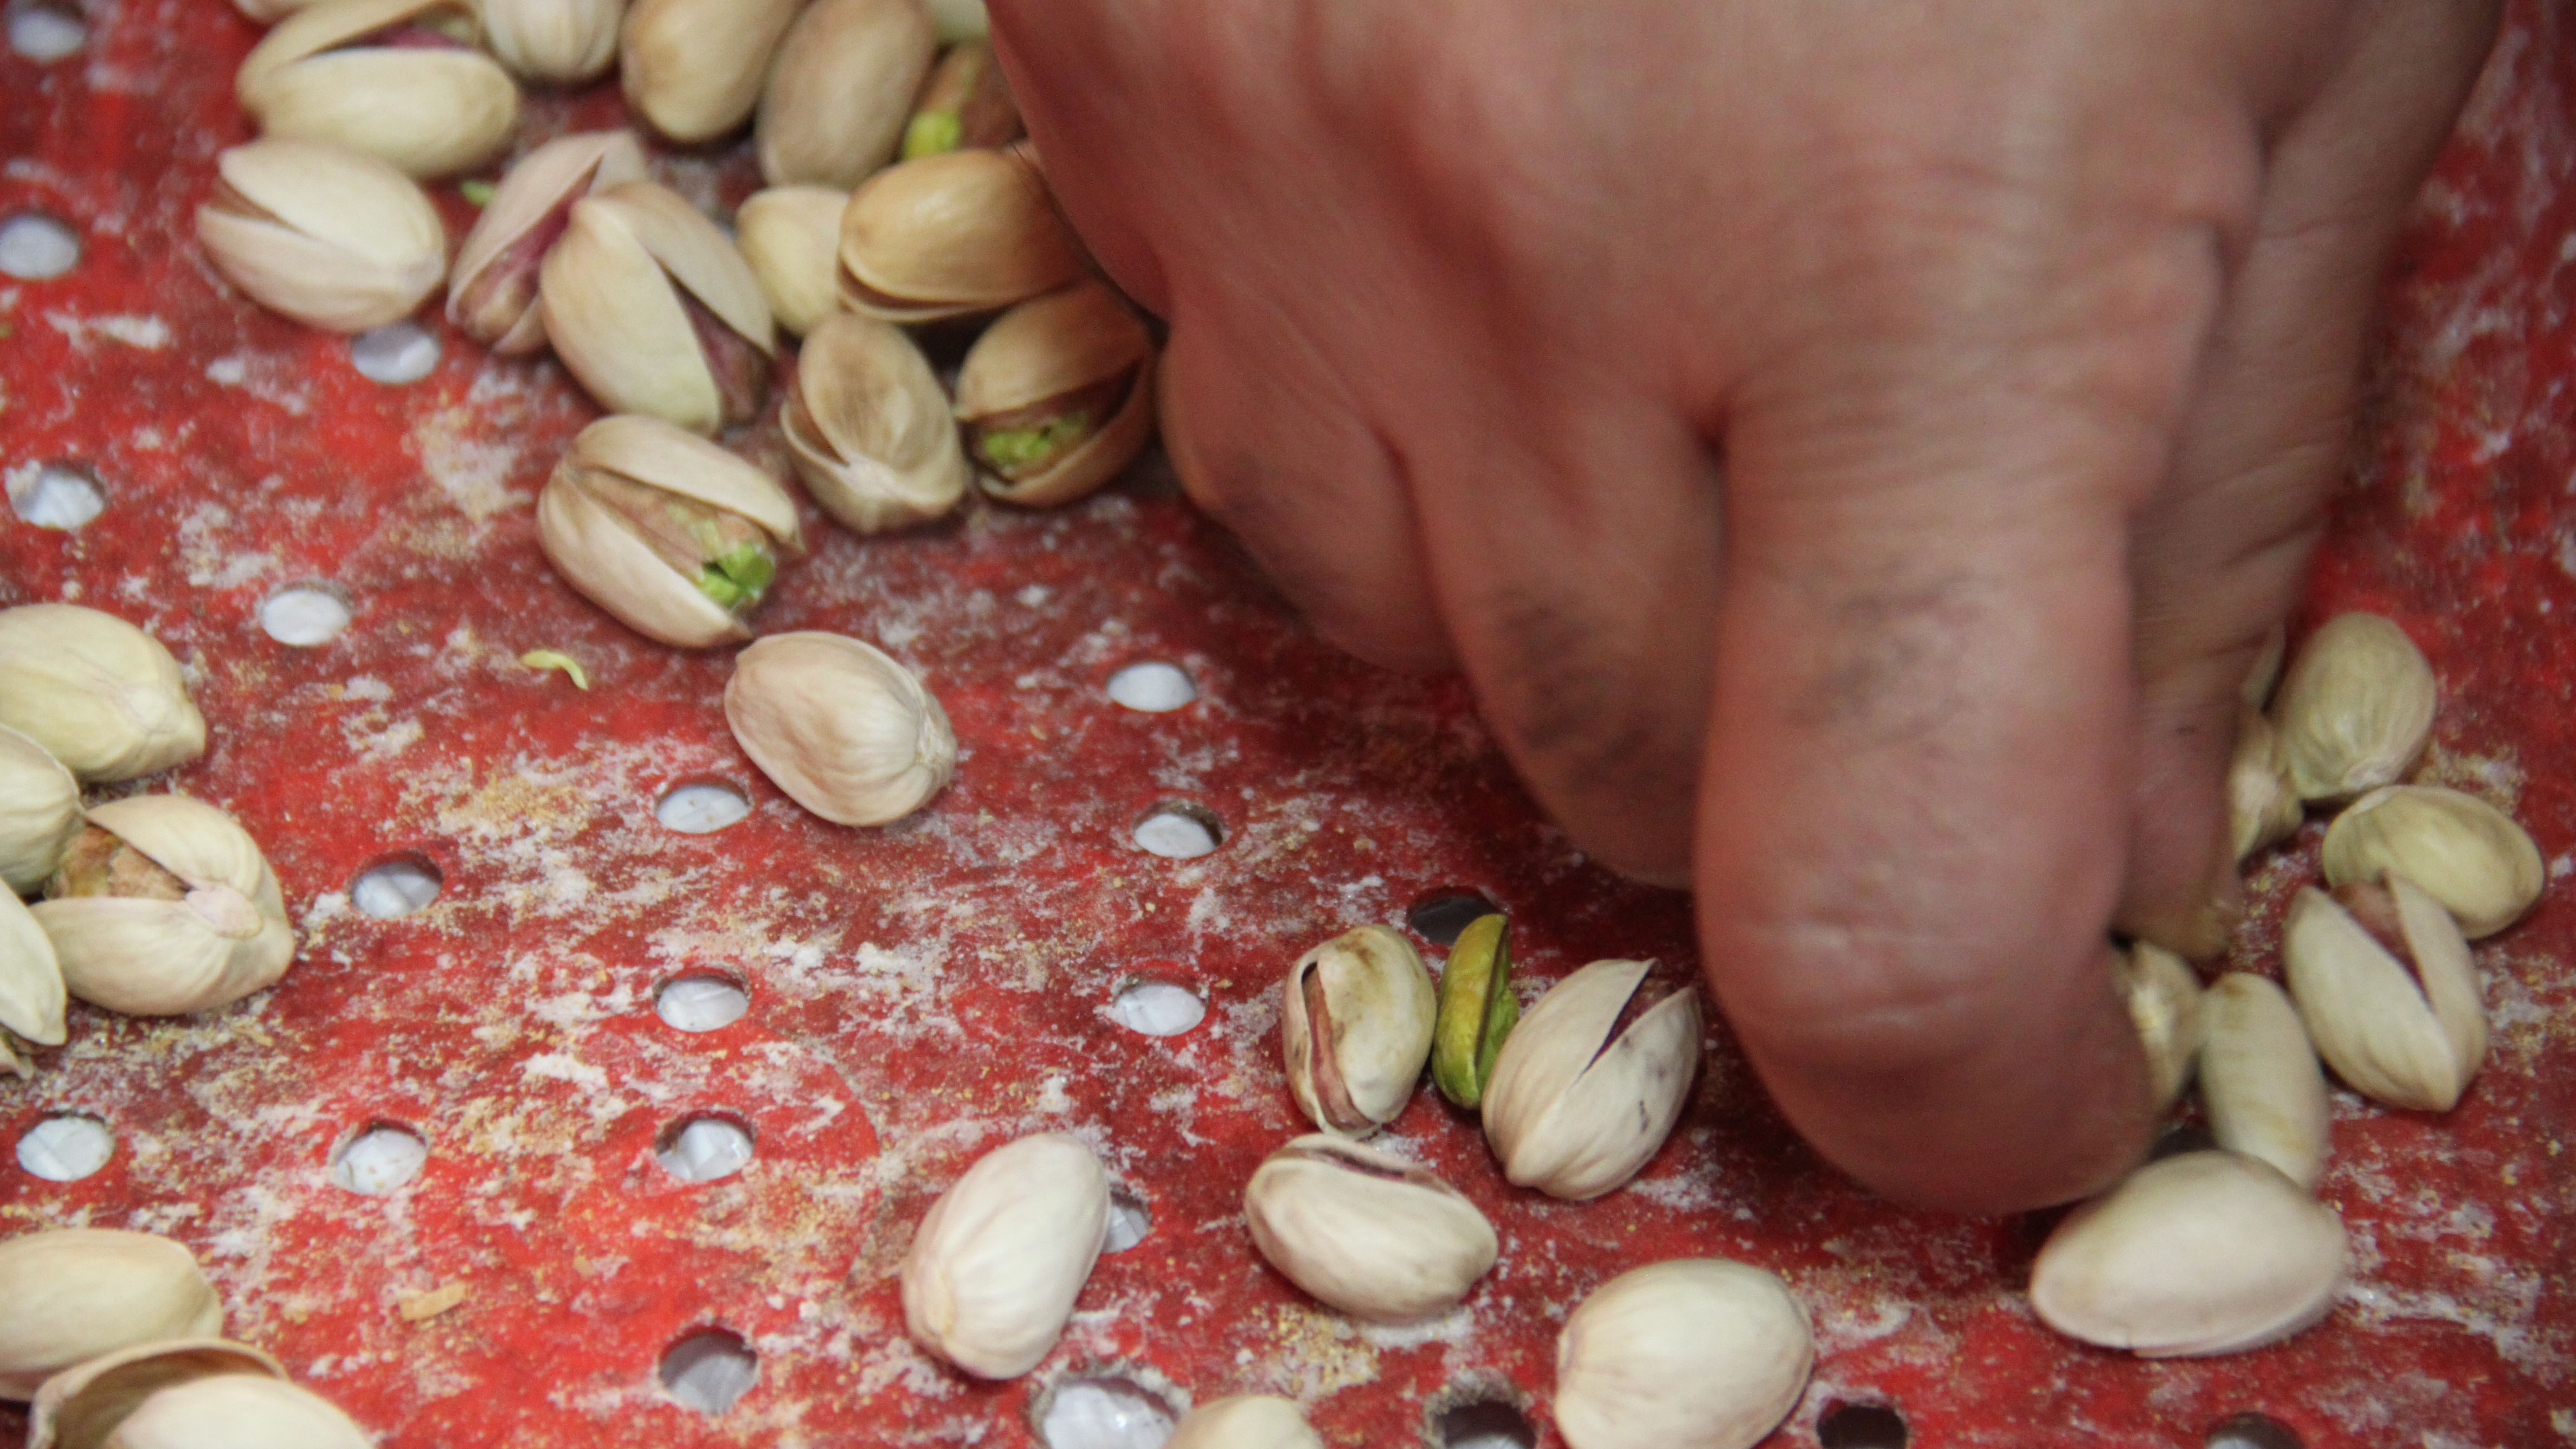 Mohammed Shehada sorts a bag of pistachios, weeding out the American-grown nuts from what are supposed to be Iranian-grown ones. American pistachios are bigger and lighter in color, and the shells are slightly pointier.